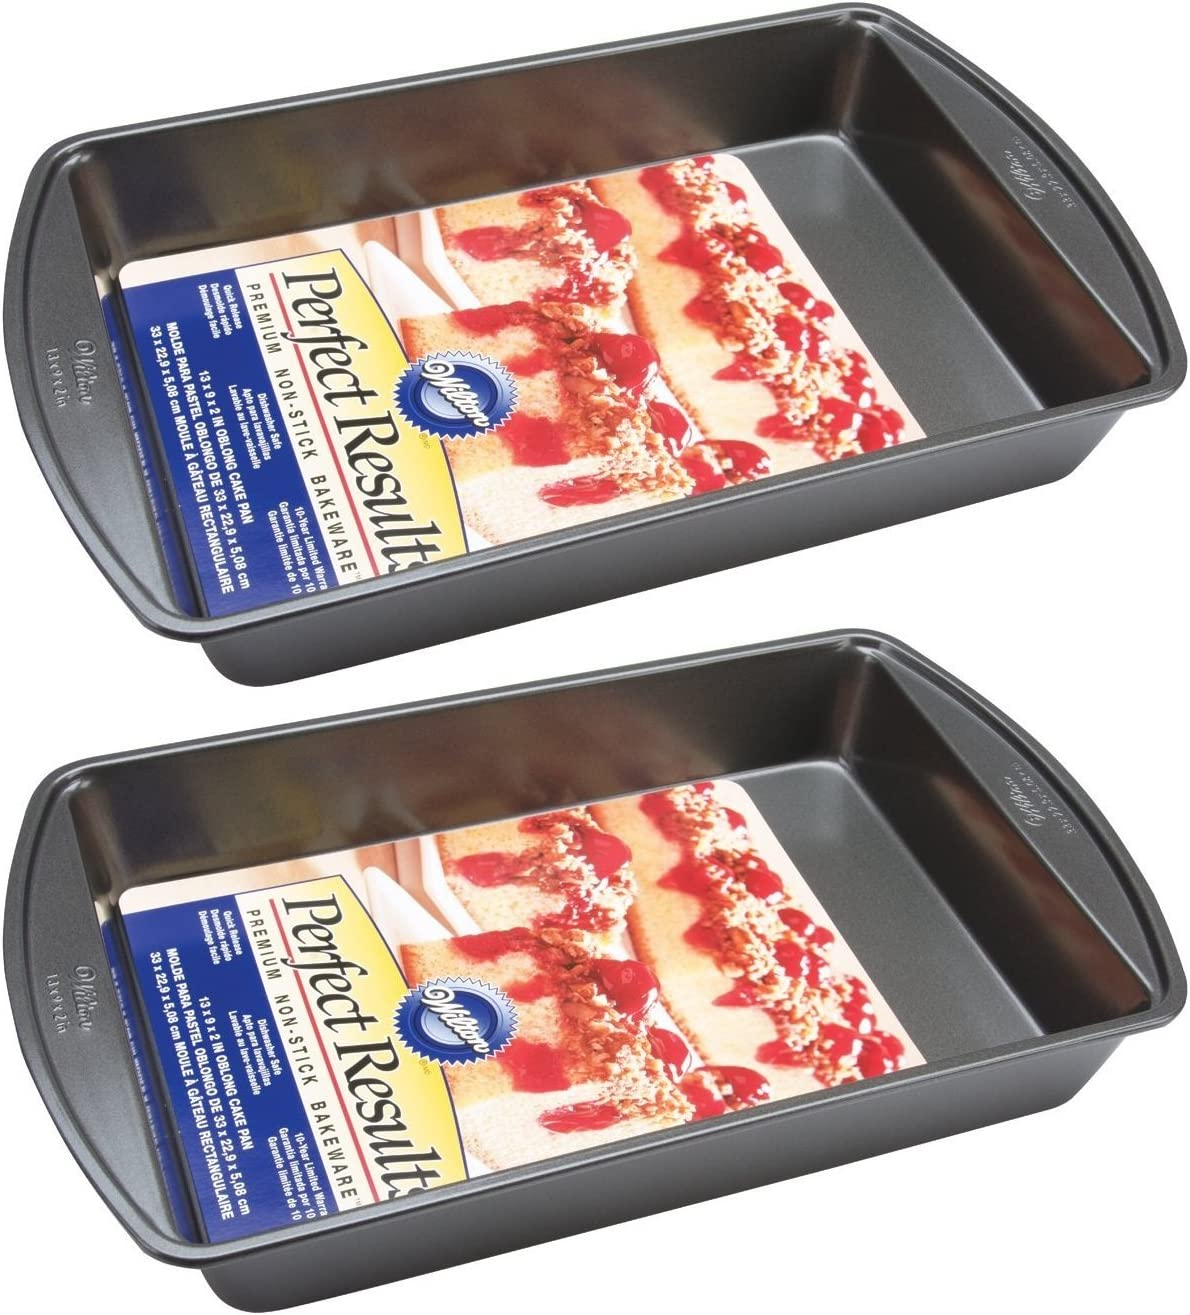 WILTON Non Stick Oblong Cake Pan with Handle Container Bakeware Rectangular Hot